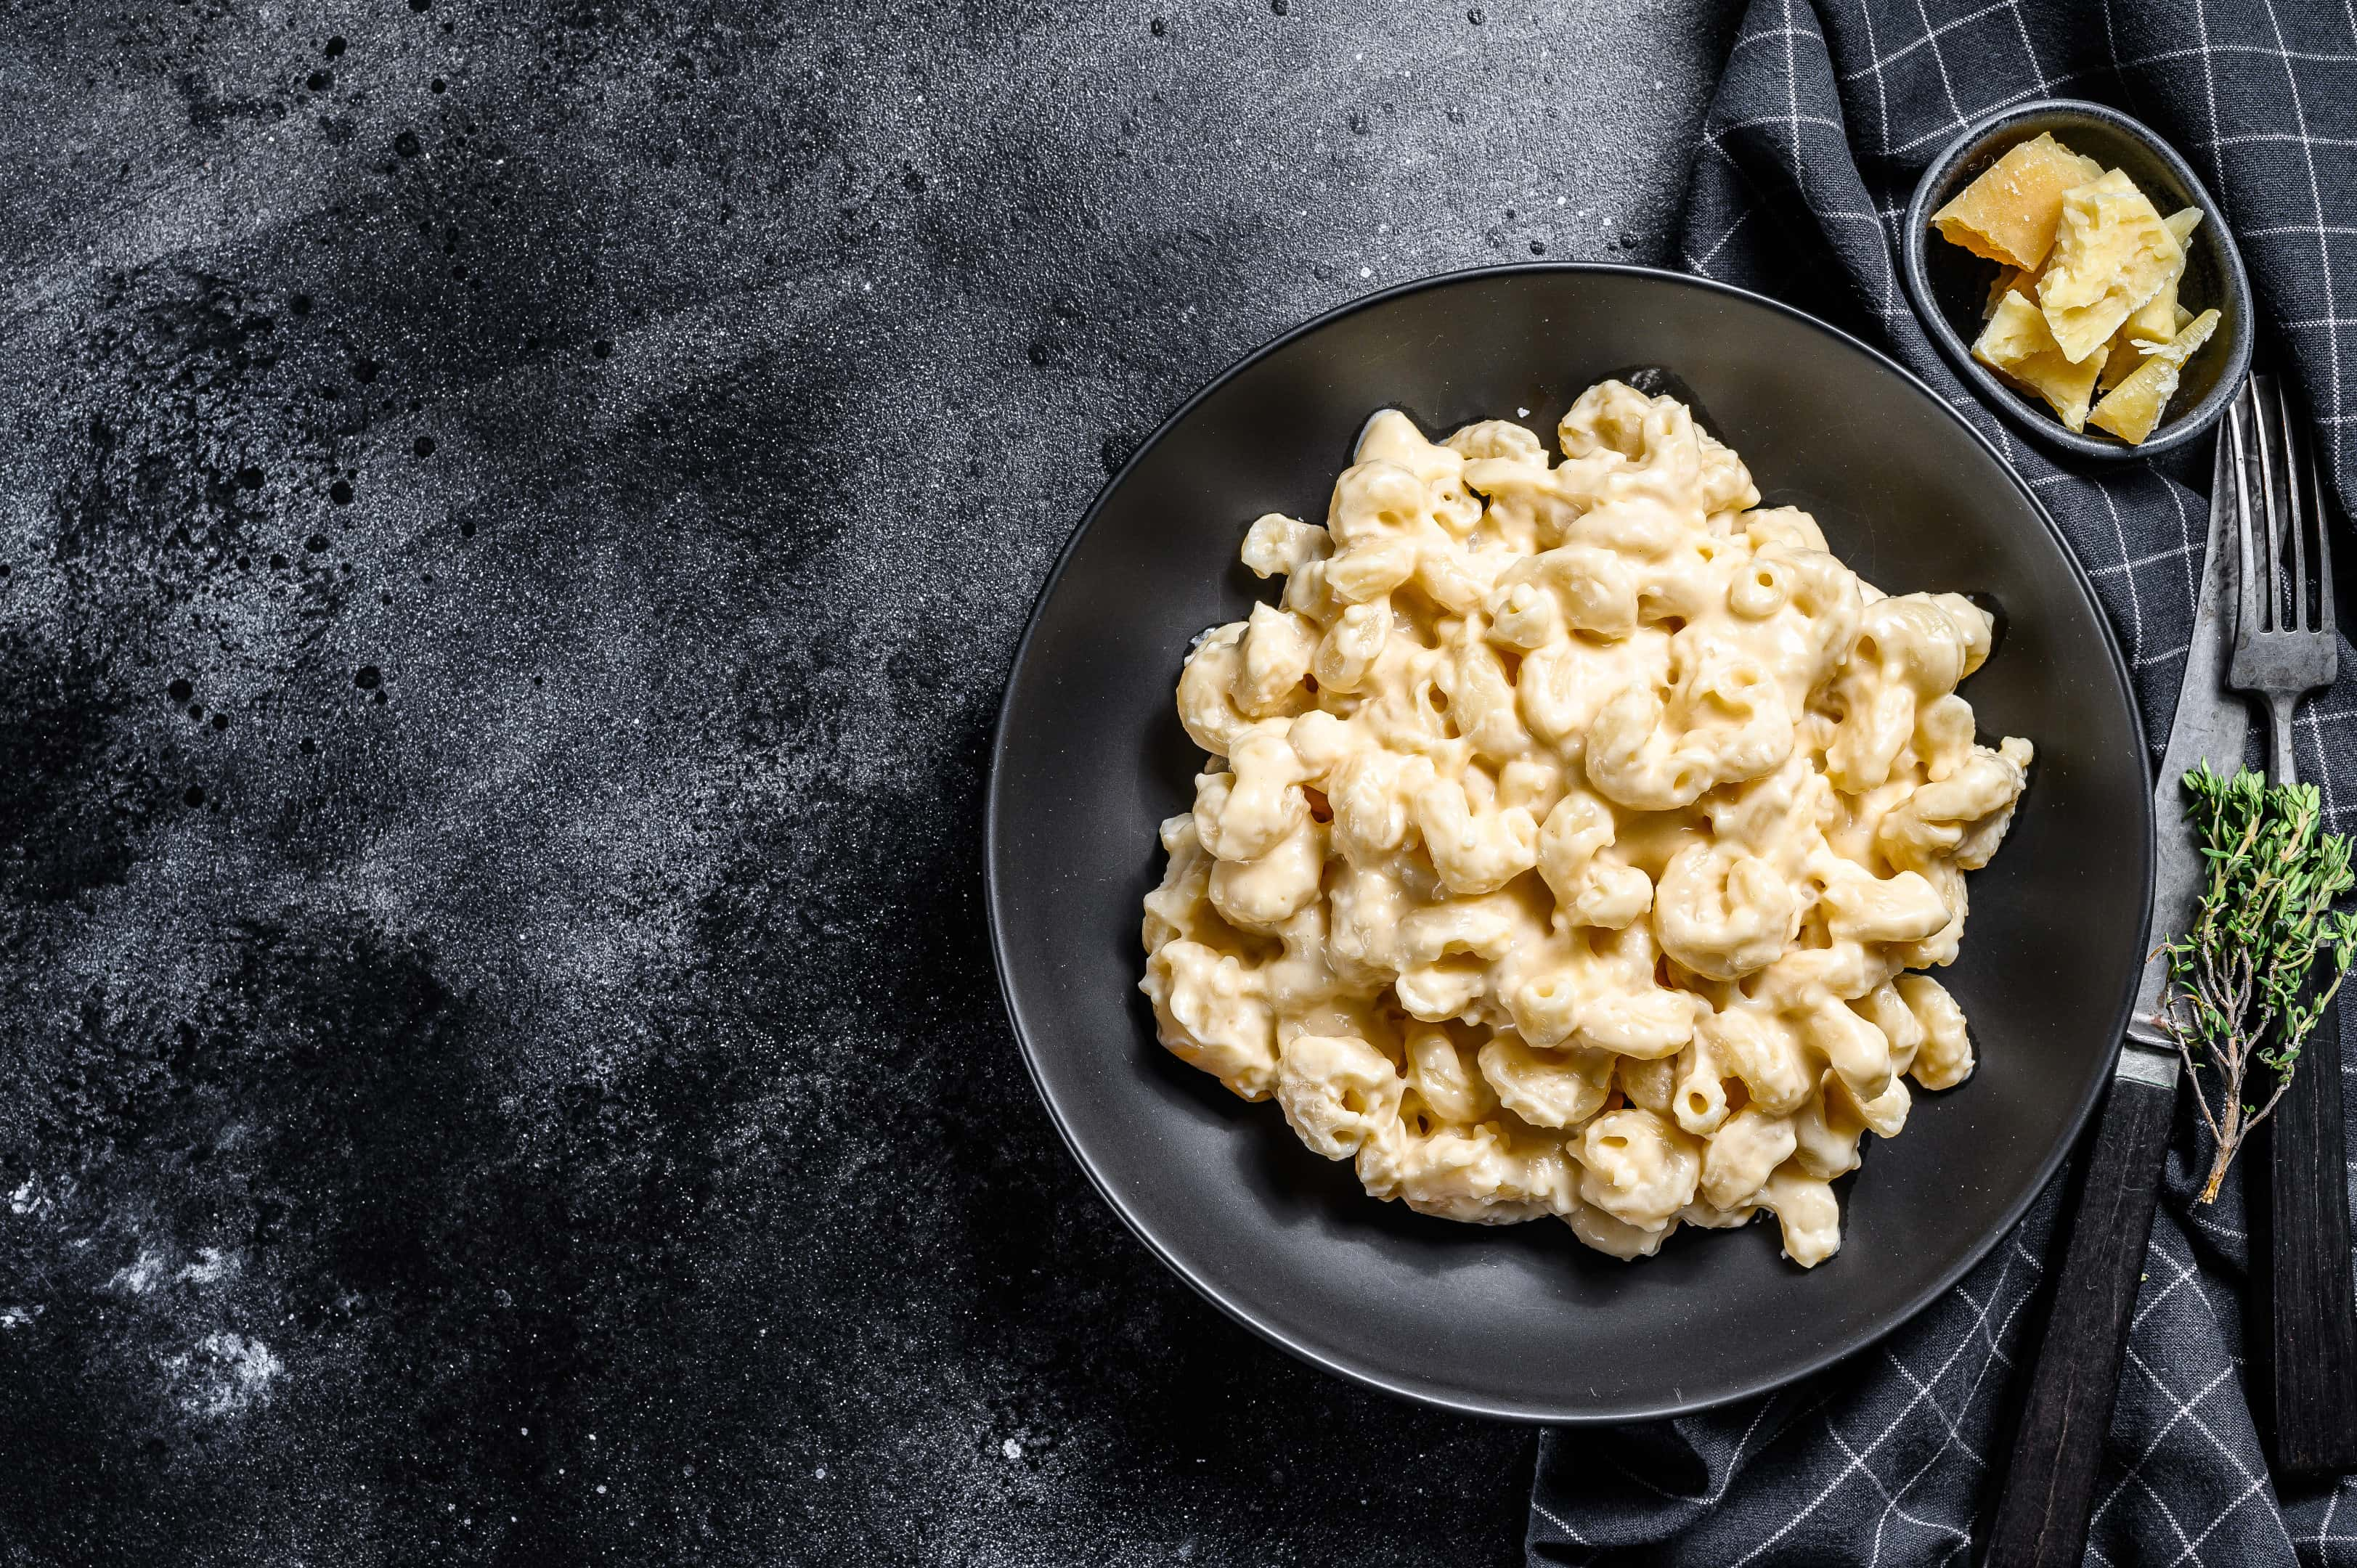 American style macaroni pasta and cheese